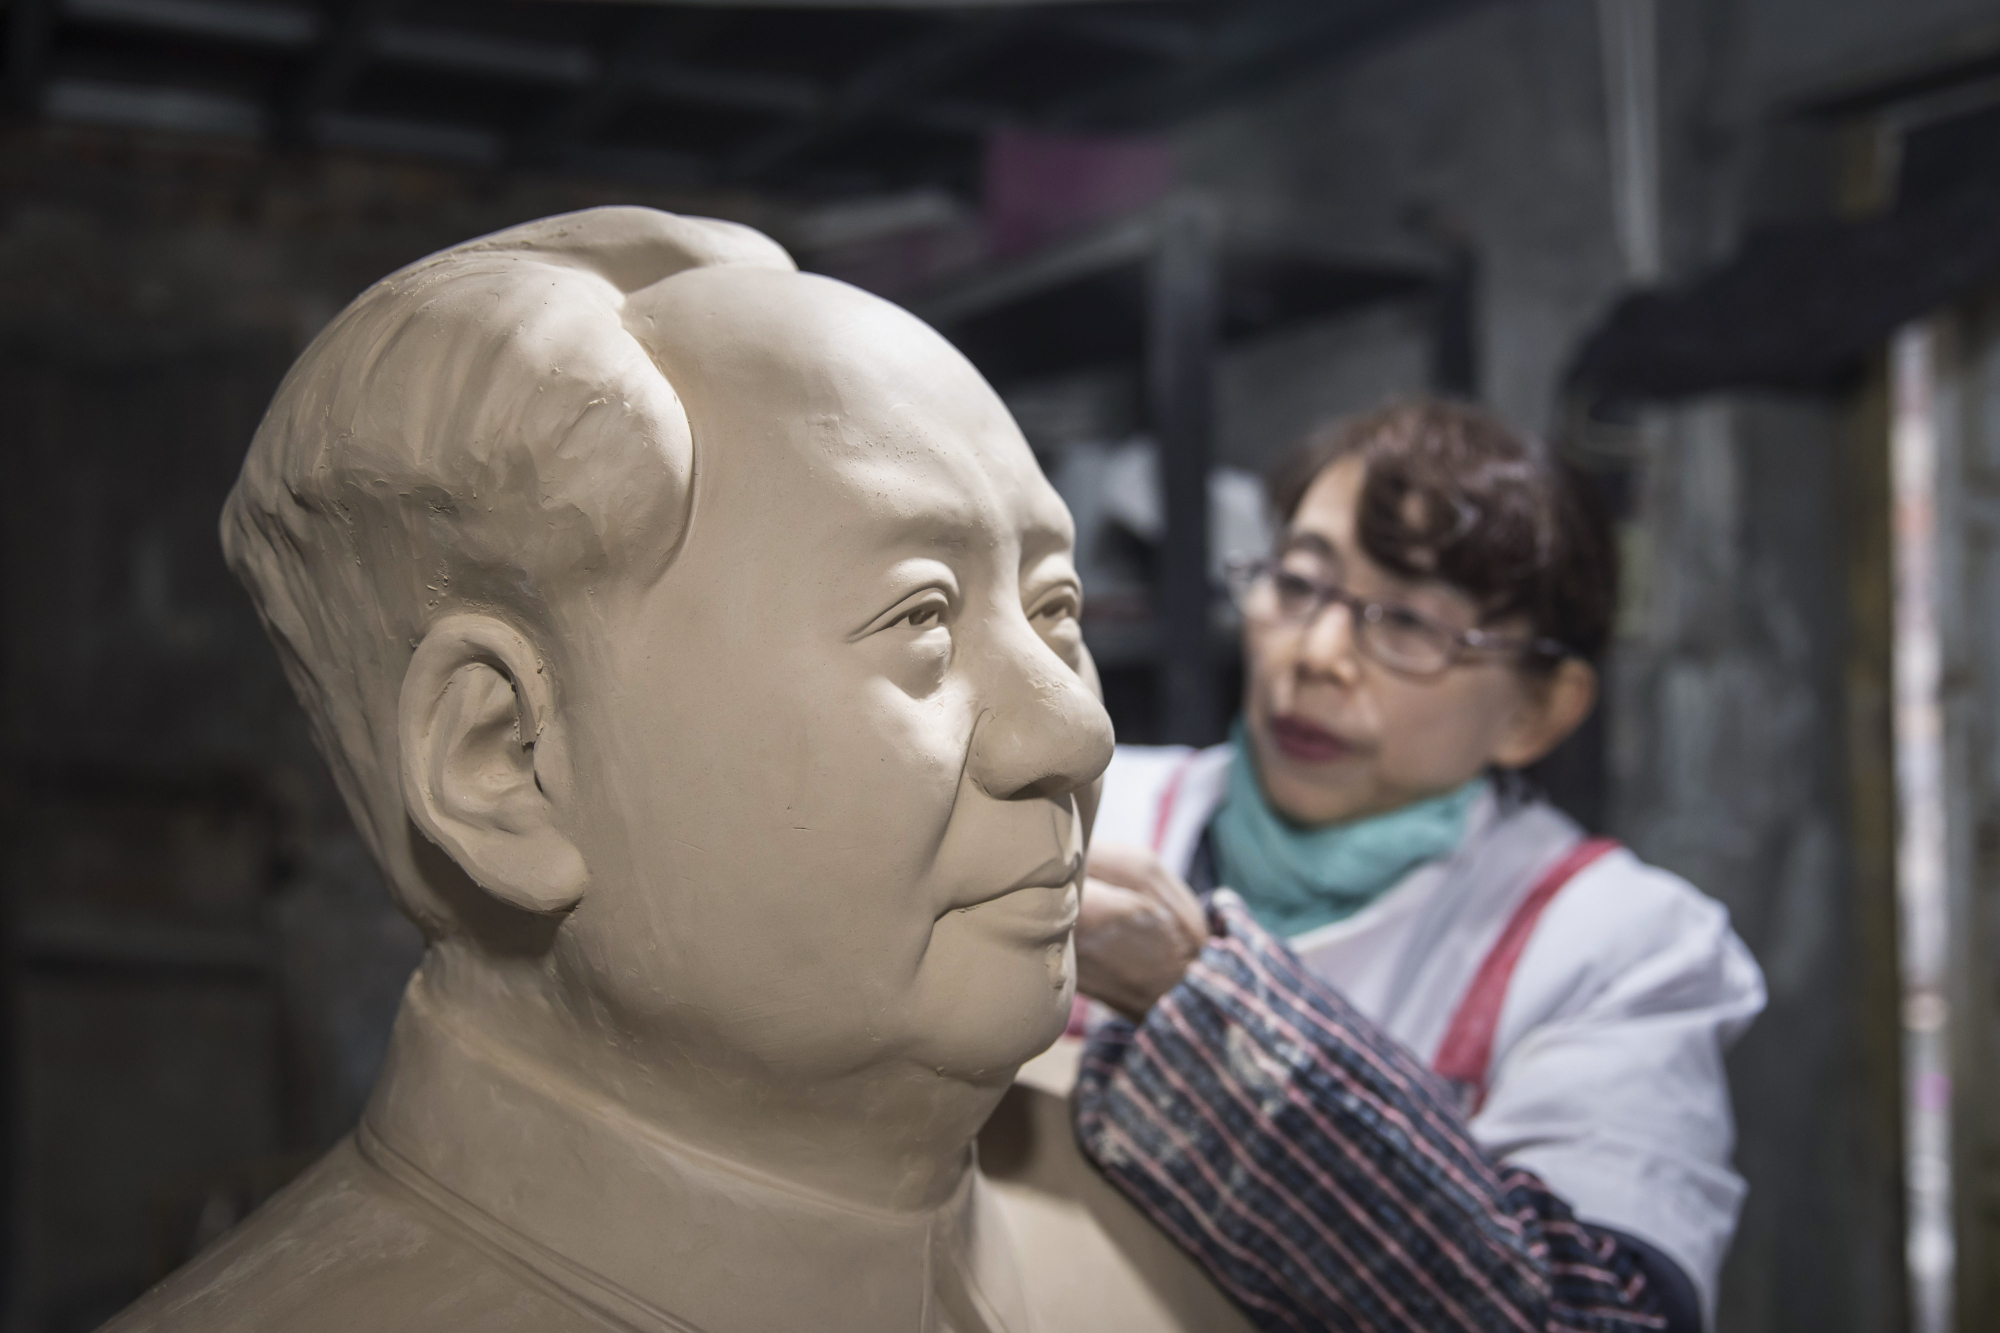 A worker sculpts a bust of former Chinese leader Mao Zedong inside a workshop at the Jingdezhen Porcelain Factory in Jingdezhen in China's Jiangxi province in January. | BLOOMBERG